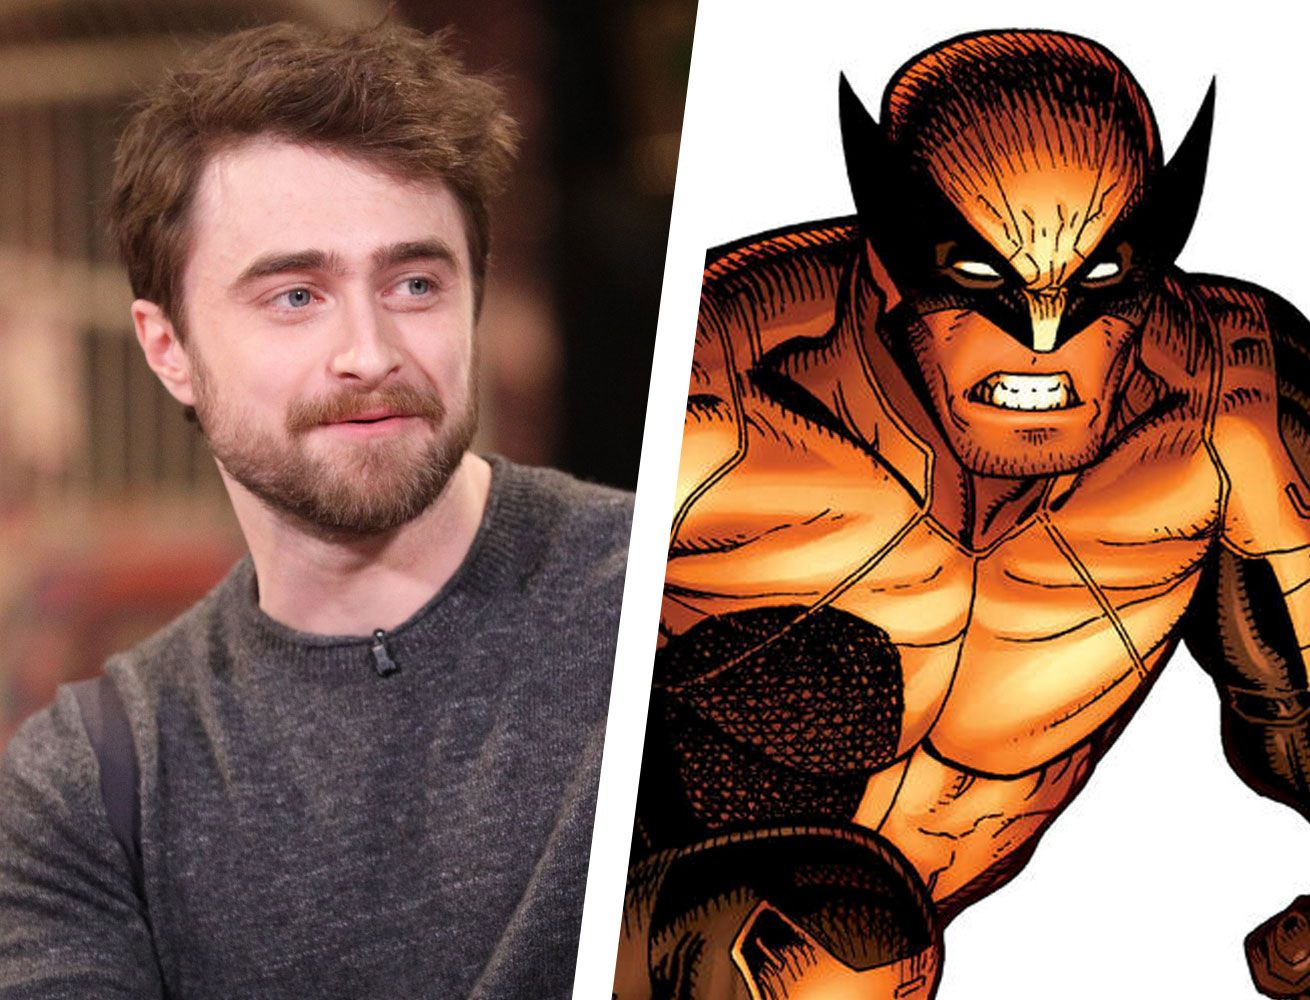 Fans Are Already Imagining How Daniel Radcliffe Could Look as Wolverine